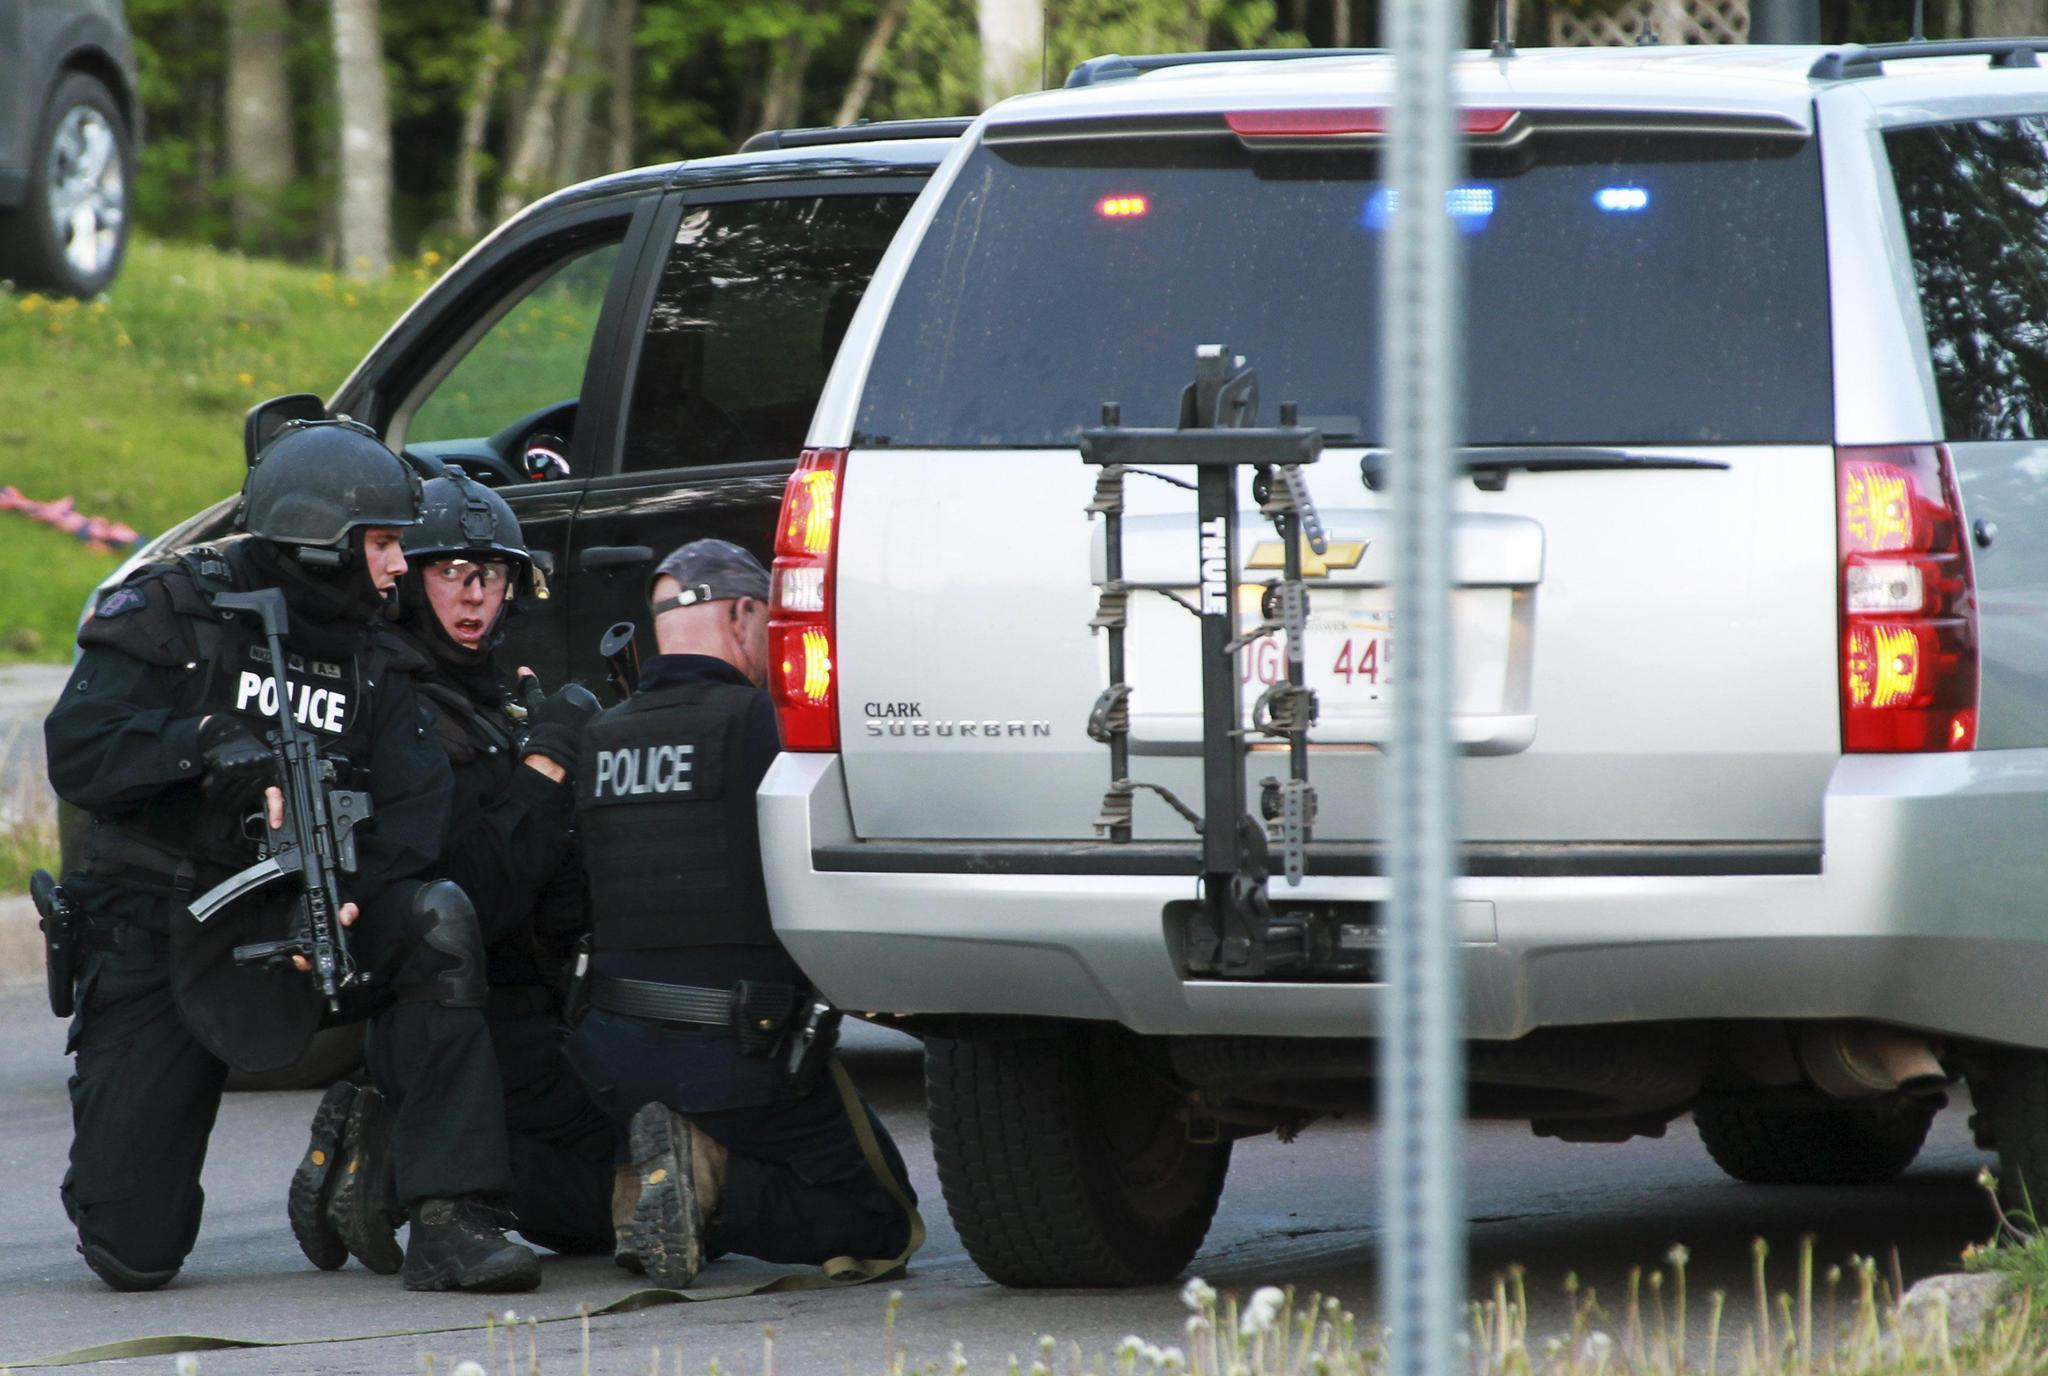 Emergency Response team members take cover behind vehicles in Moncton, New Brunswick June 4, 2014. Three police officers were shot dead and two more were wounded, police said as they conducted a manhunt for a man carrying a rifle and wearing camouflage clothes. Police said they were searching for Justin Bourque, 24, of Moncton.